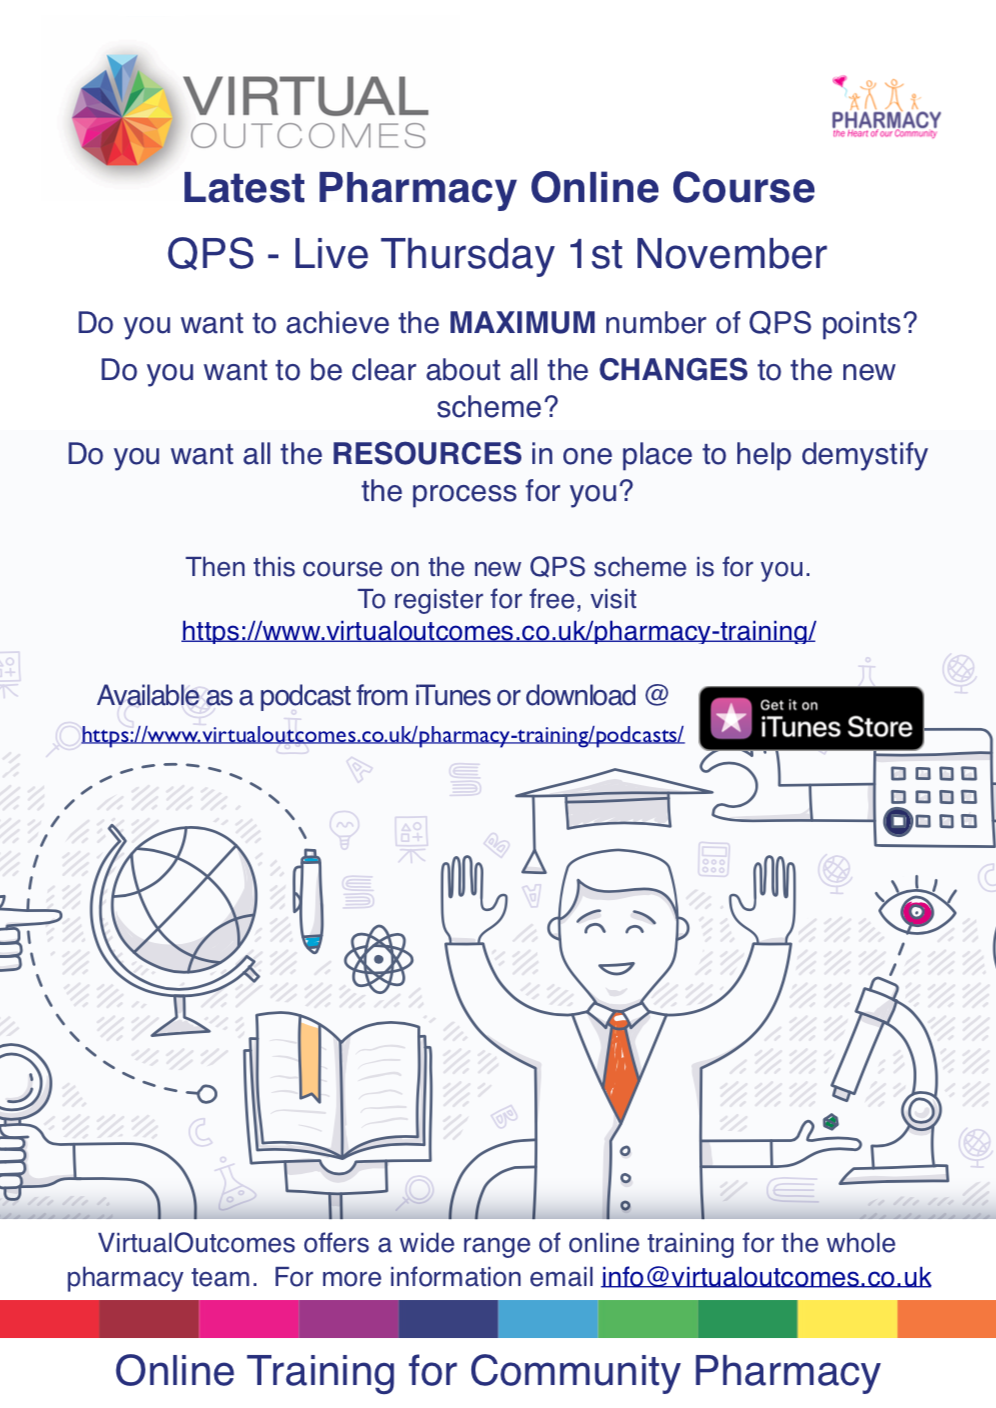 Virtual_Outcomes_QPS_Course_Flyer.png